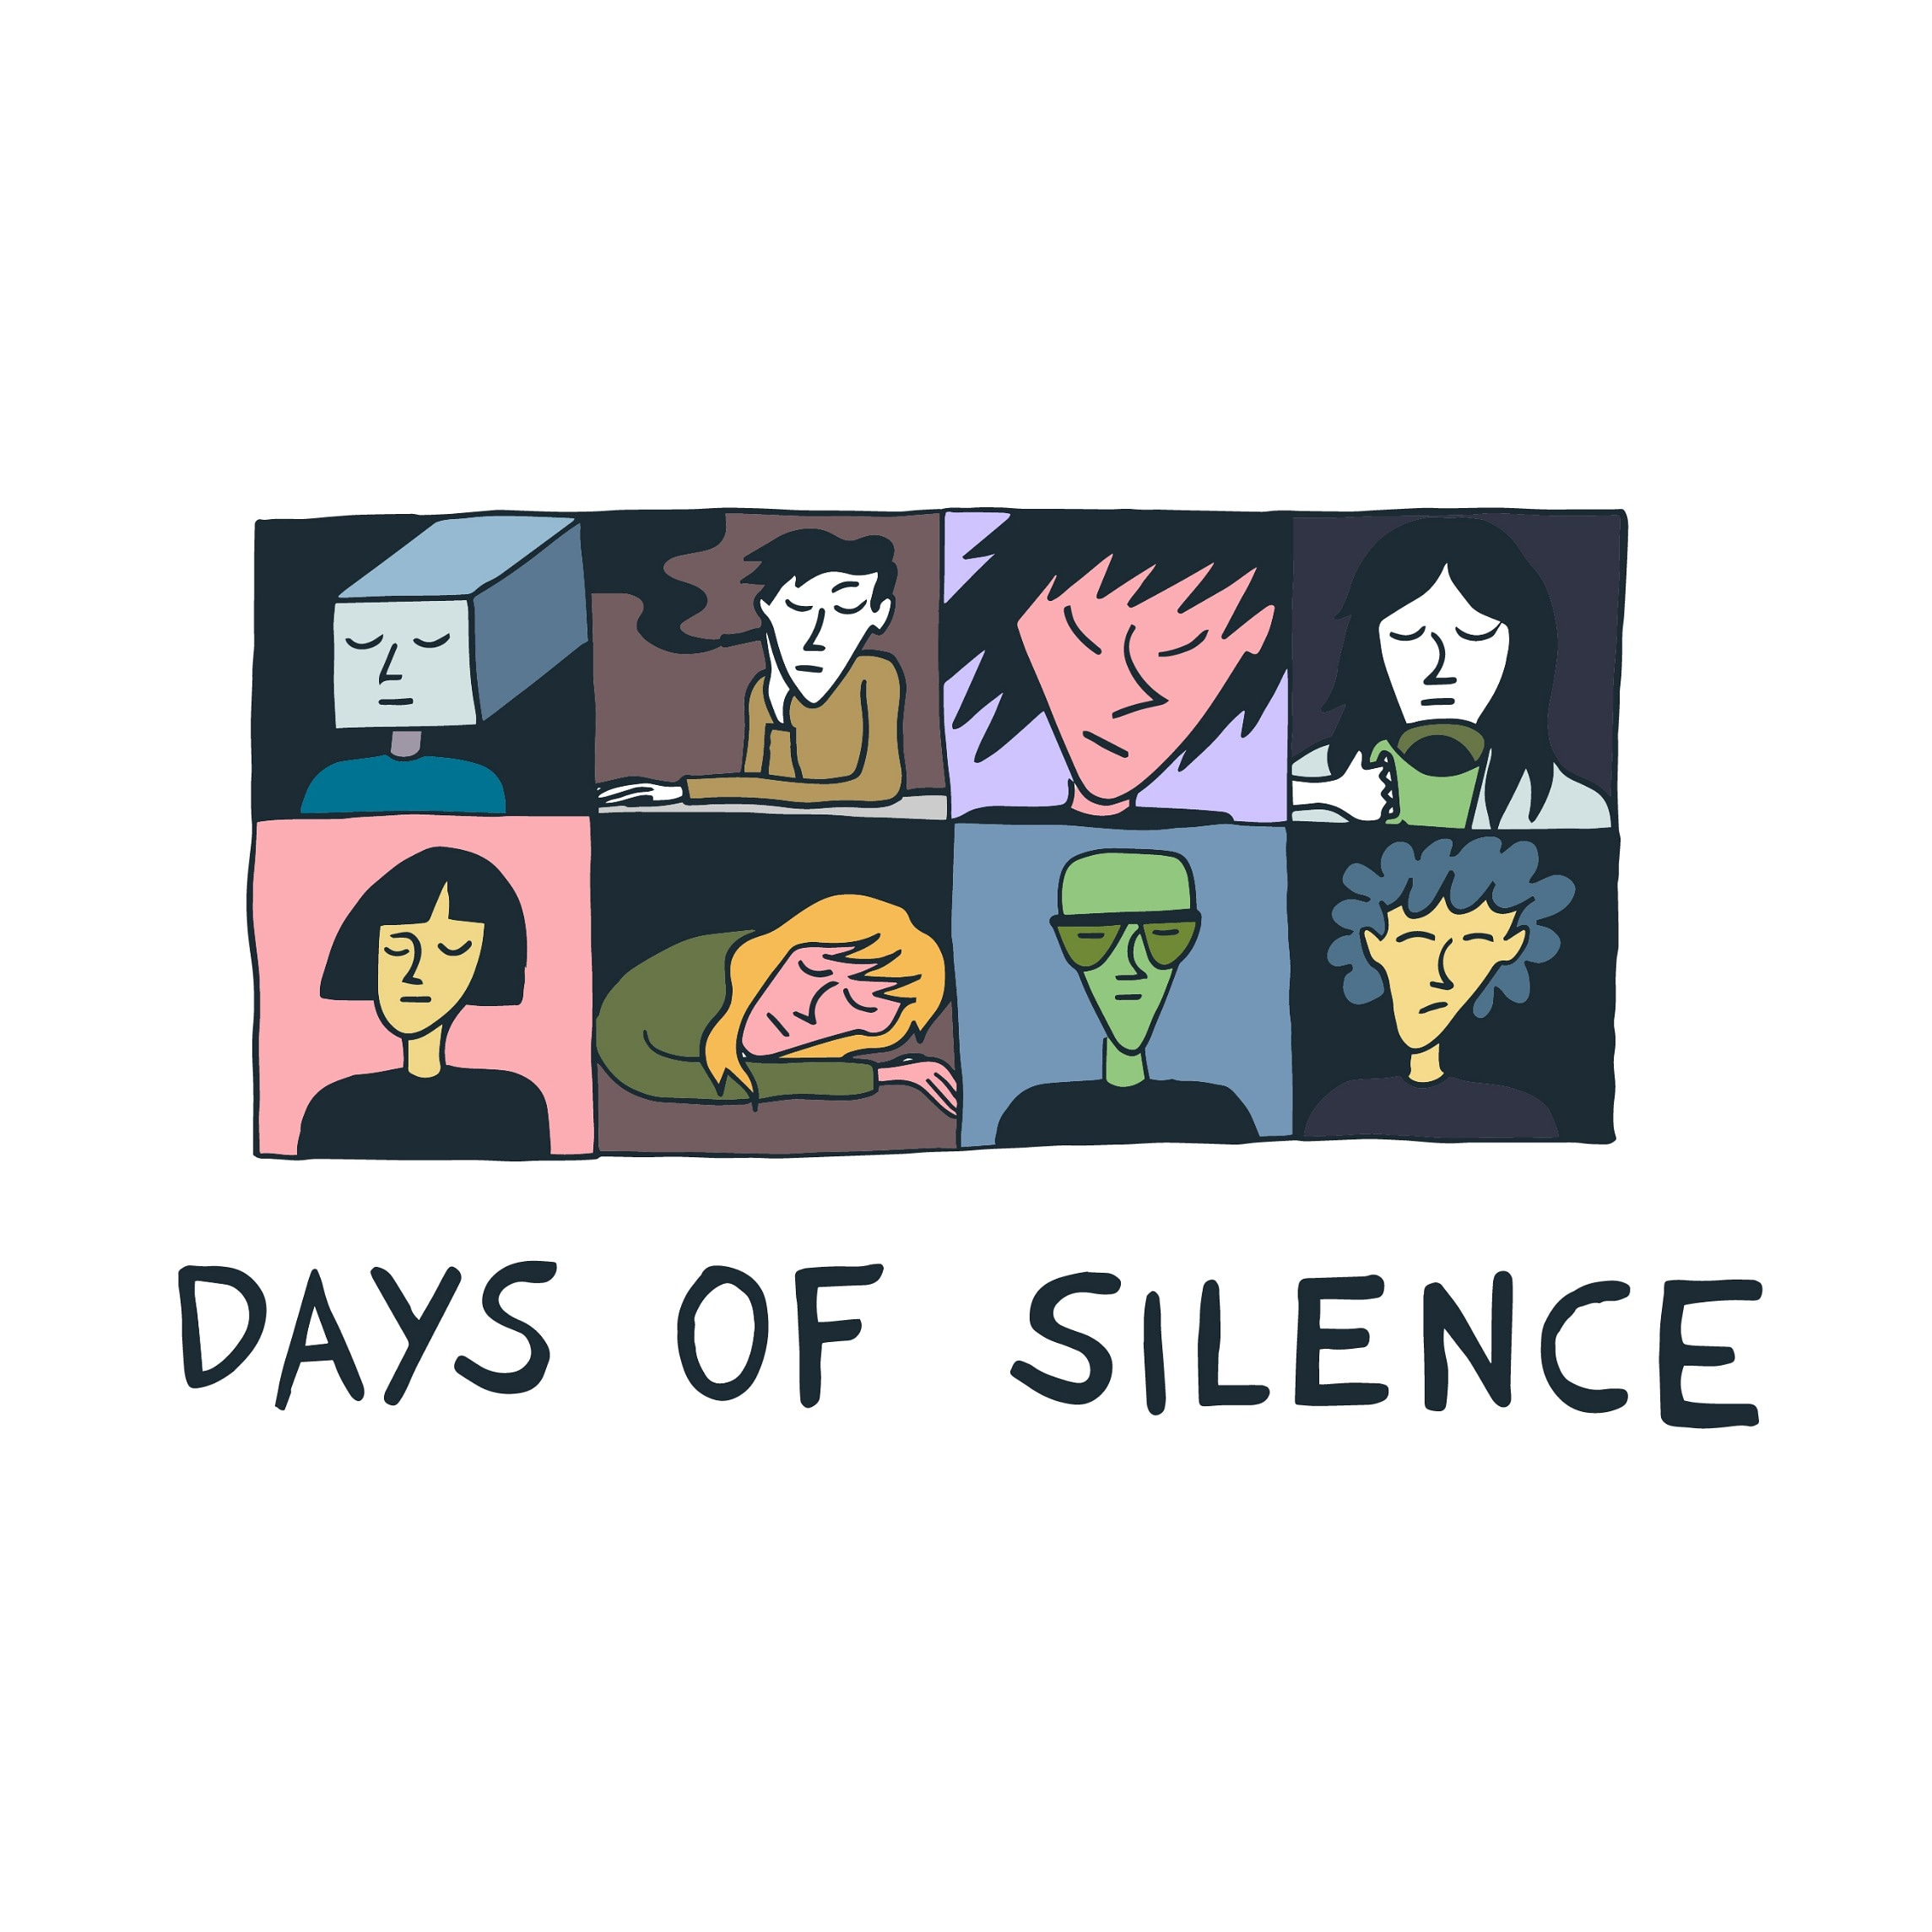 Days of silence